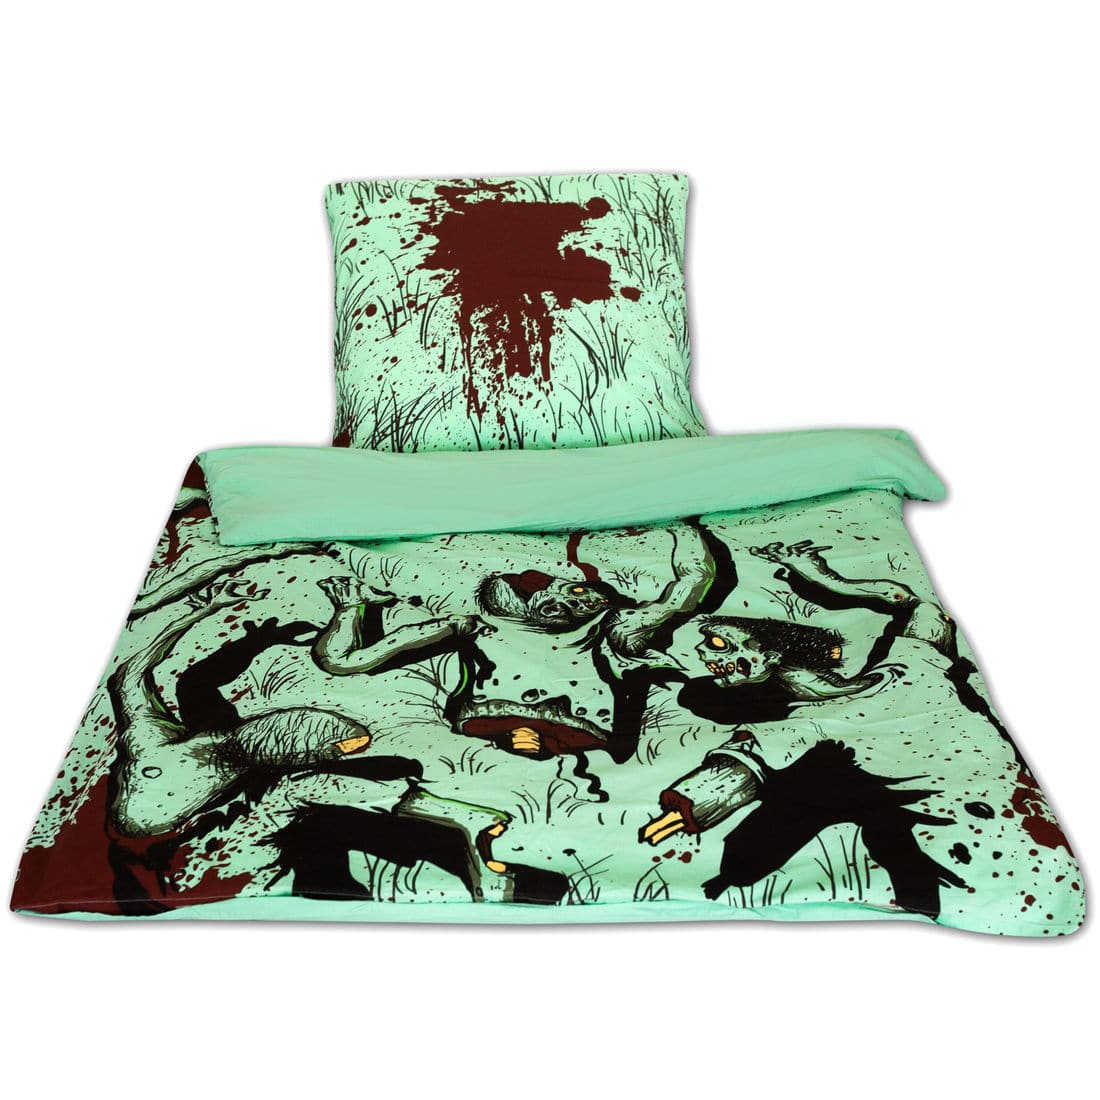 zombie bettw sche ab 44 g nstig kaufen 06 2018. Black Bedroom Furniture Sets. Home Design Ideas